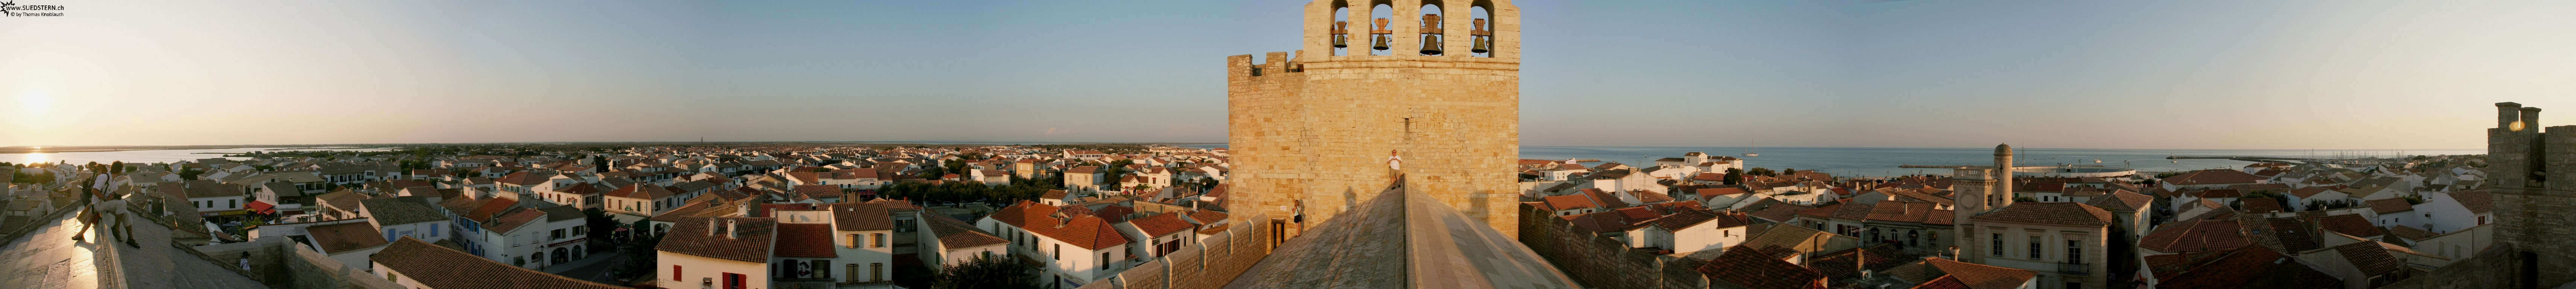 2008-08-28 - Panorama on the rooftop of church in st. maries de la mer, france